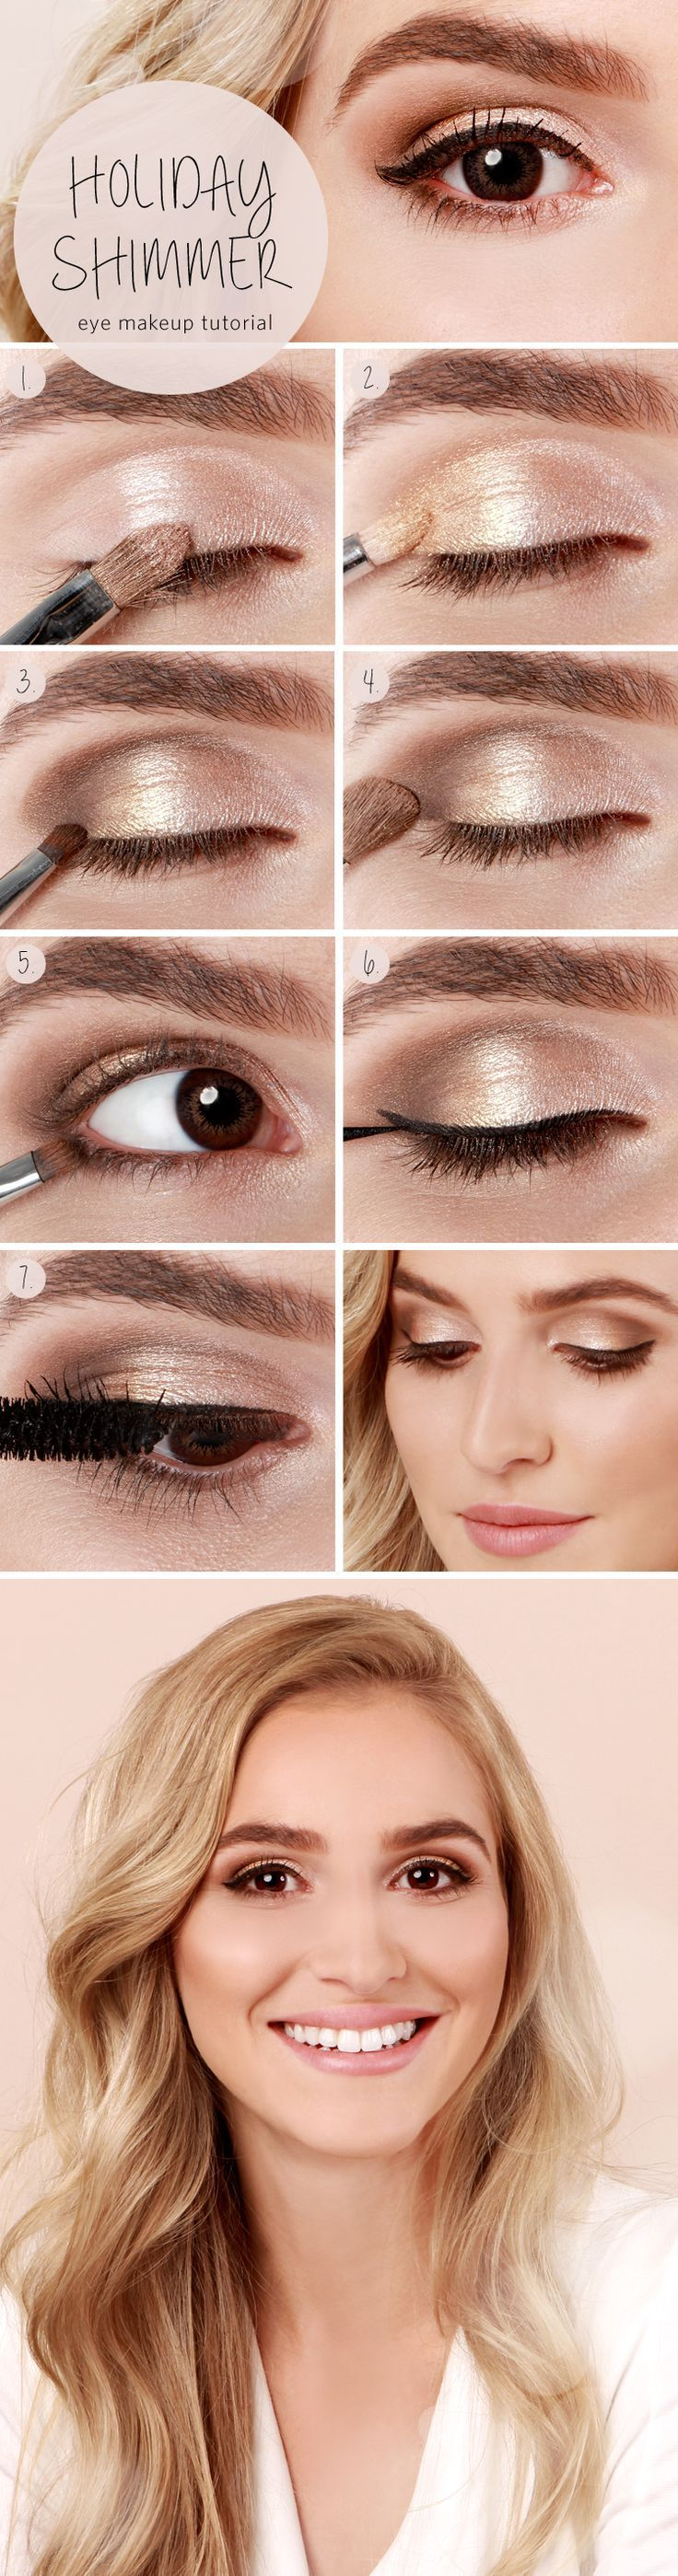 8 Beautiful Brown Eyes Makeup Tutorials  http://www.ferbena.com/8-beautiful-brown-eyes-makeup-tutorials.html